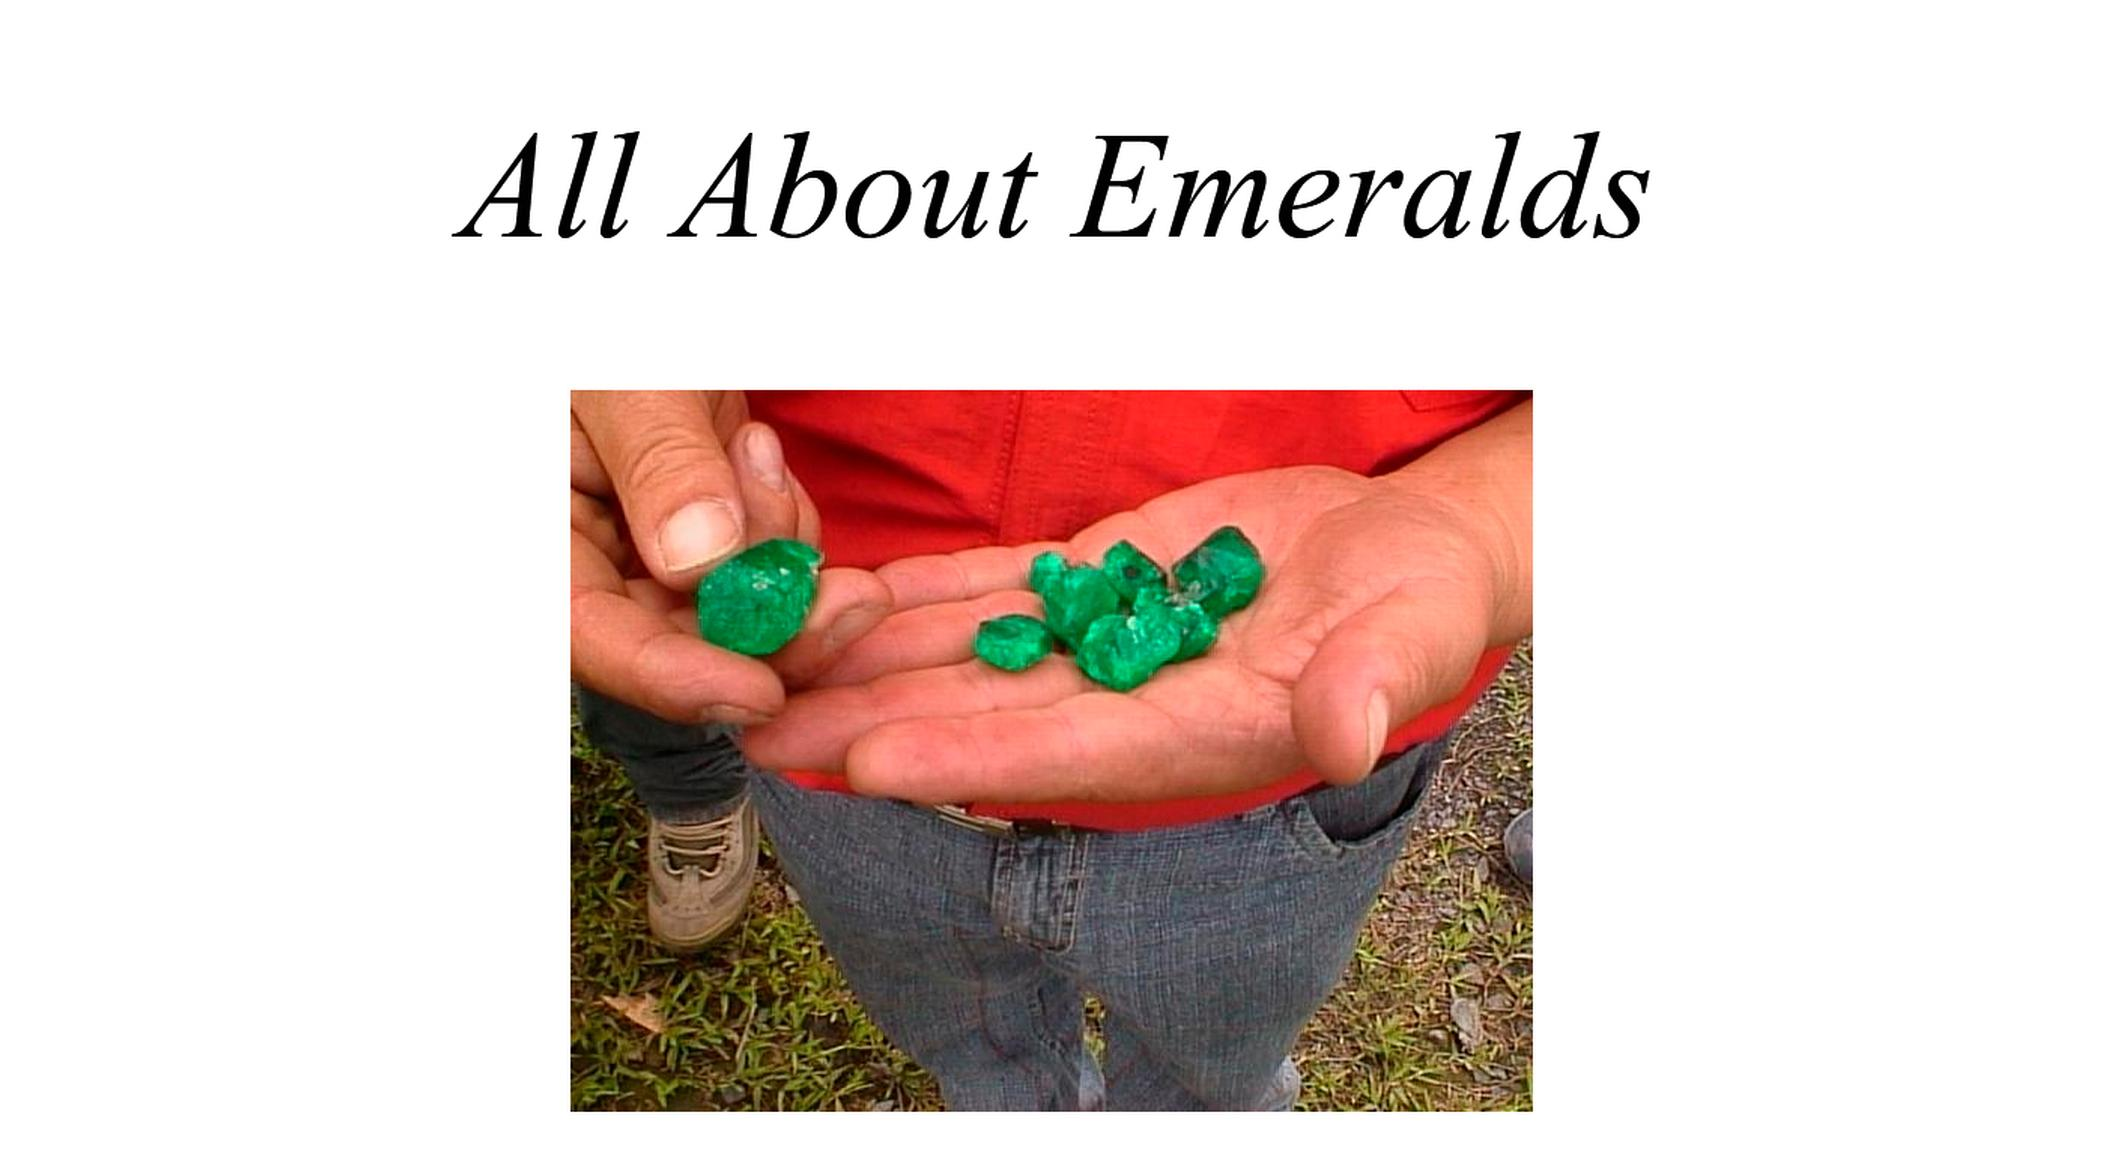 All about emeralds